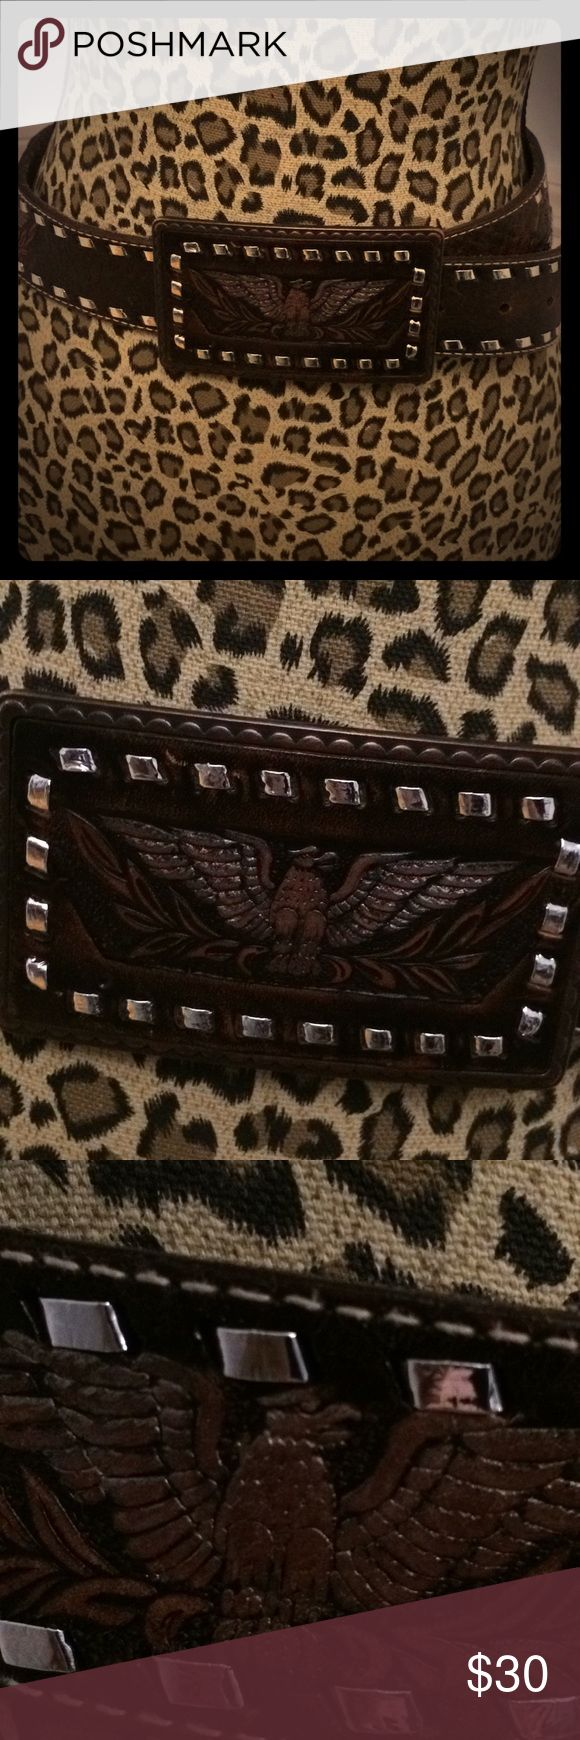 Western style belt with studs Super soft western style belt with eagles brown leather with green flowers and eagle silver studs and rectangle buckle  Buckle is 4 .5 x 2.5 inches Accessories Belts